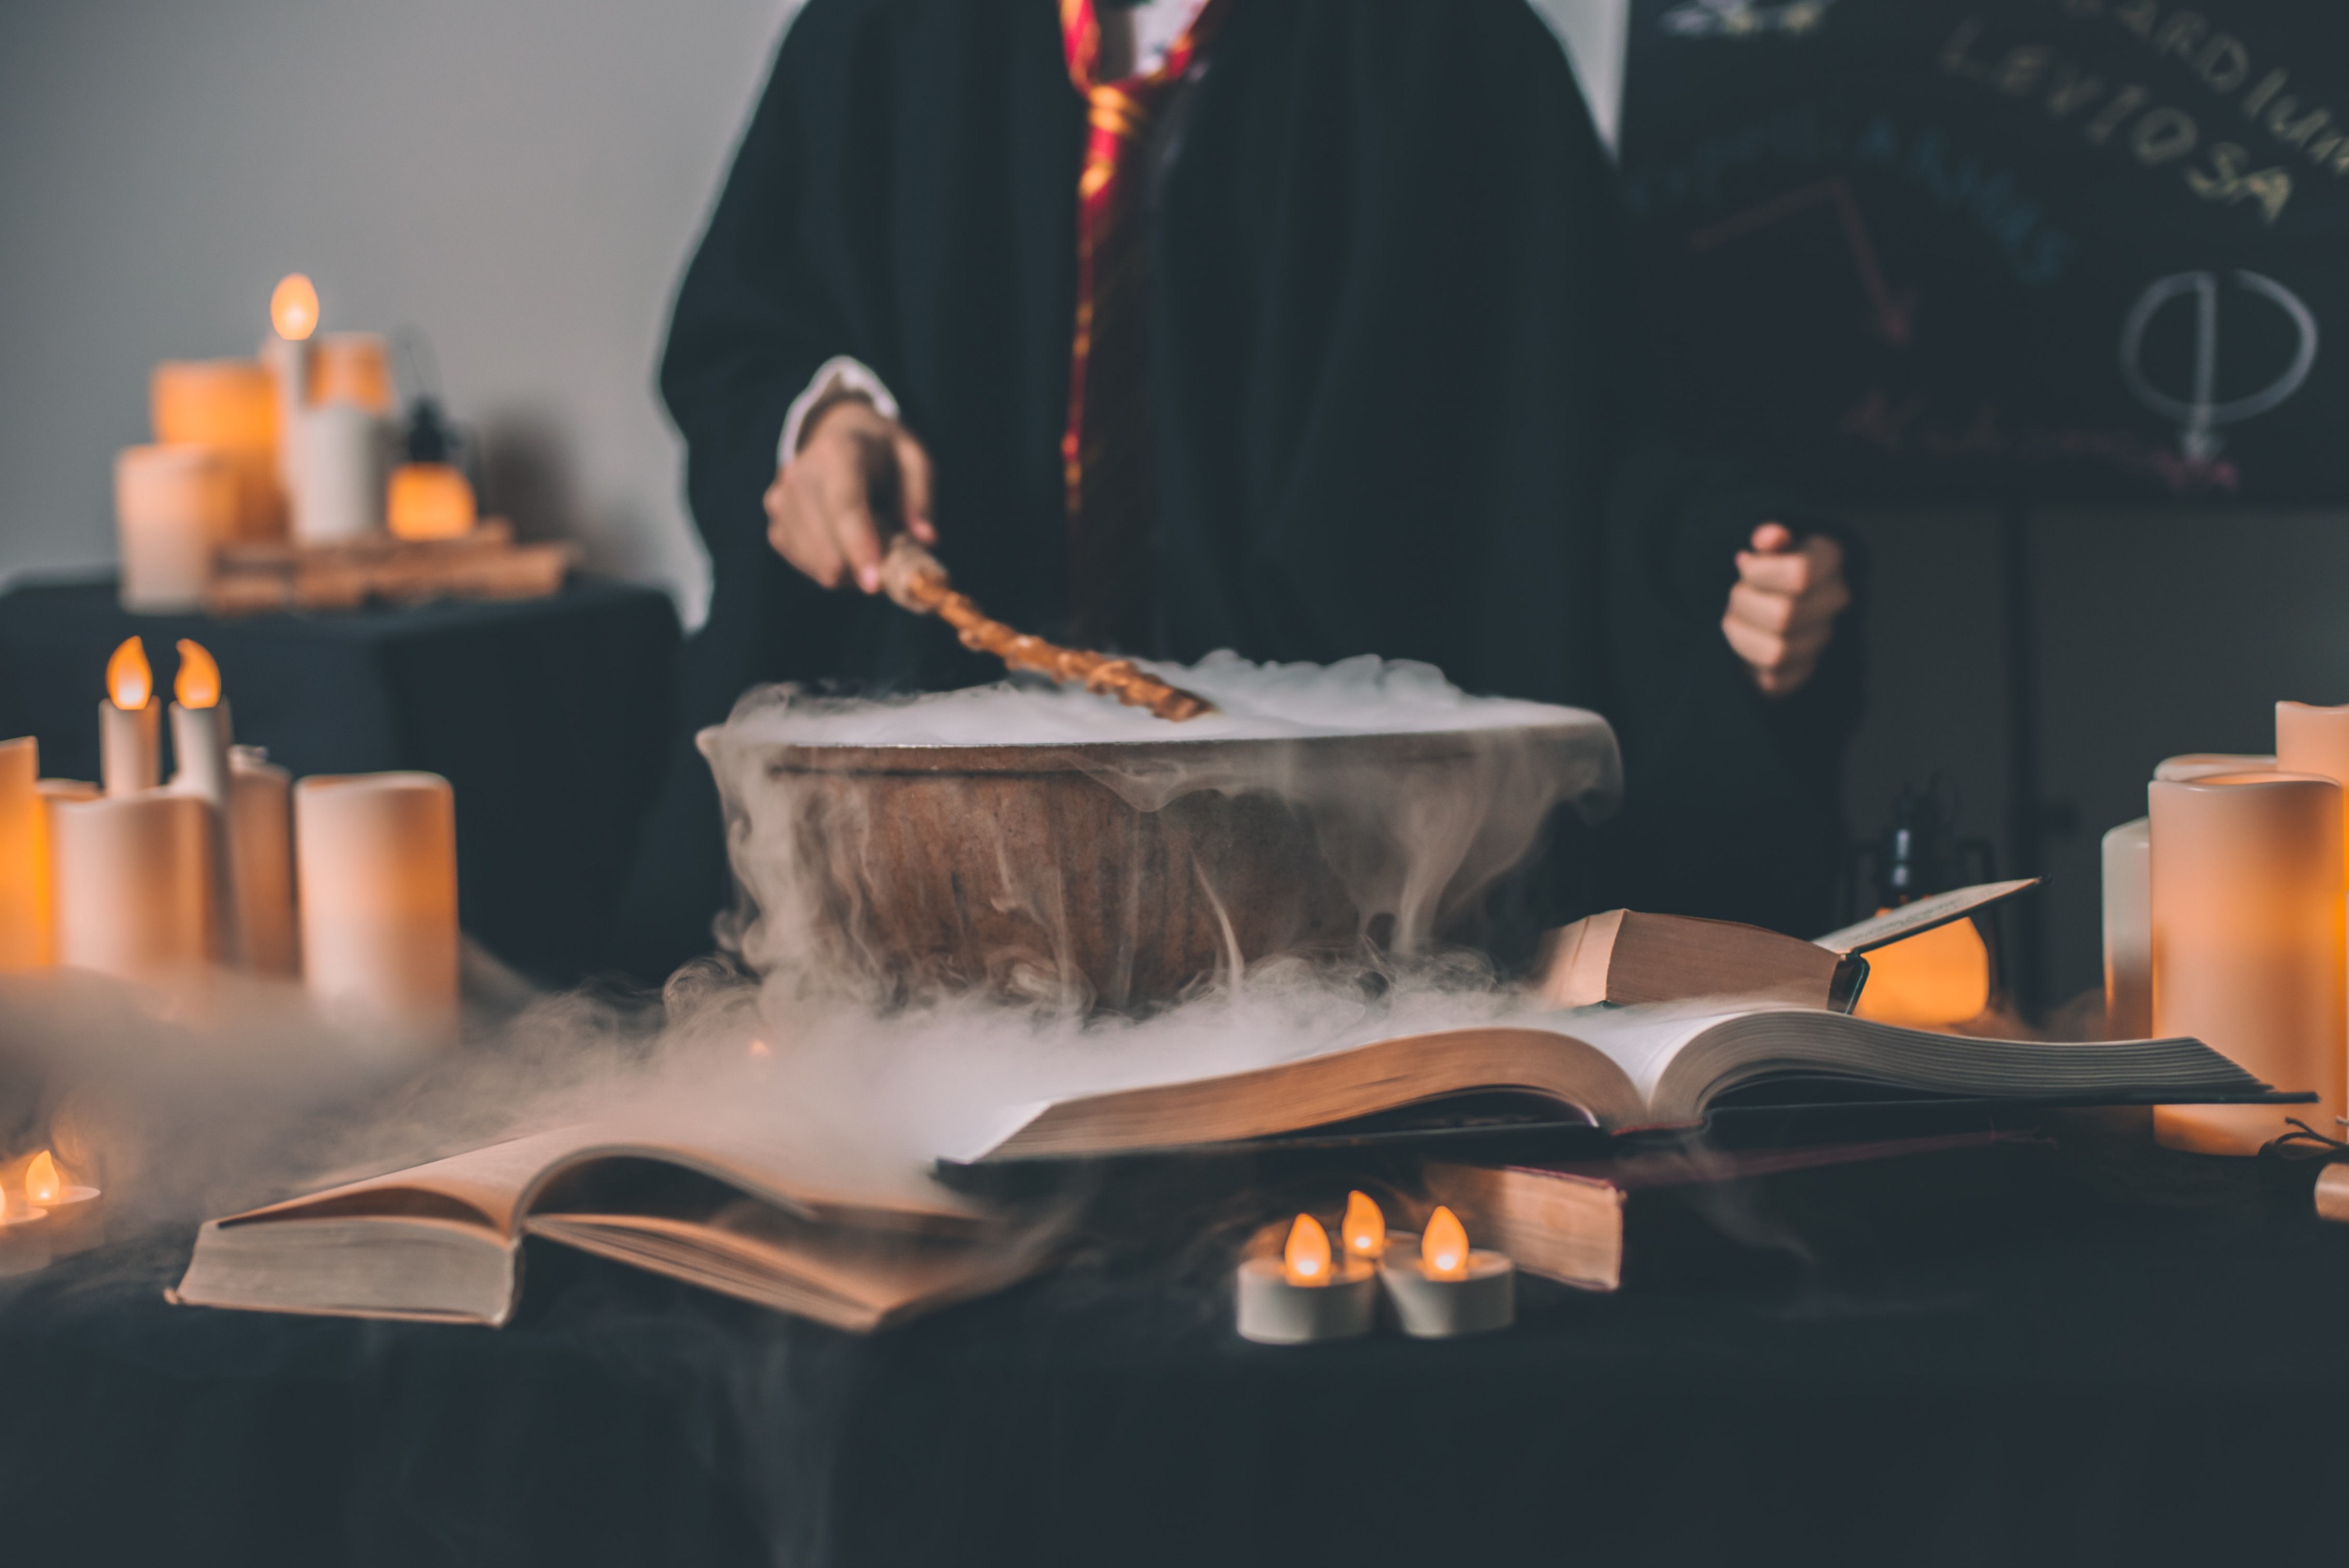 Title image: Photo of a wizard casting a spell over a smokey cauldron with books and candles around it.